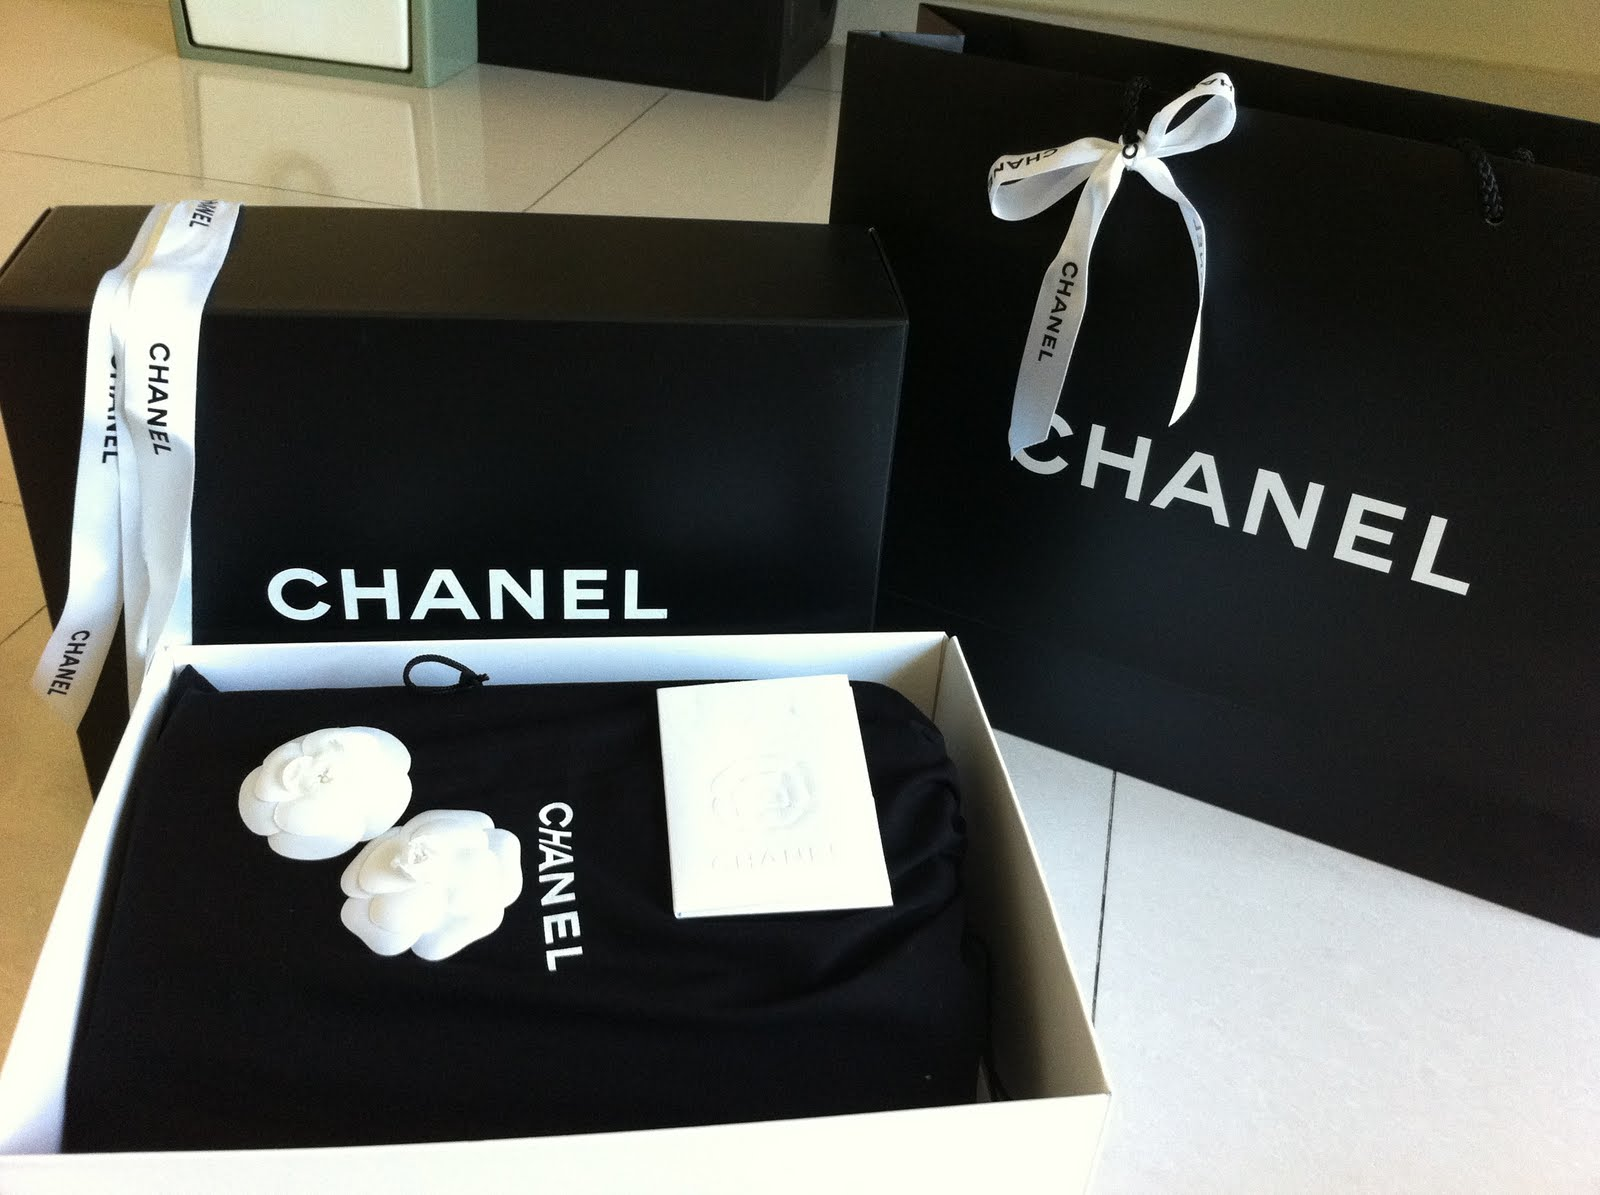 da408c7d8390e4 Welcome to my World**: Finally a Chanel bag for Valentine's Day!!!